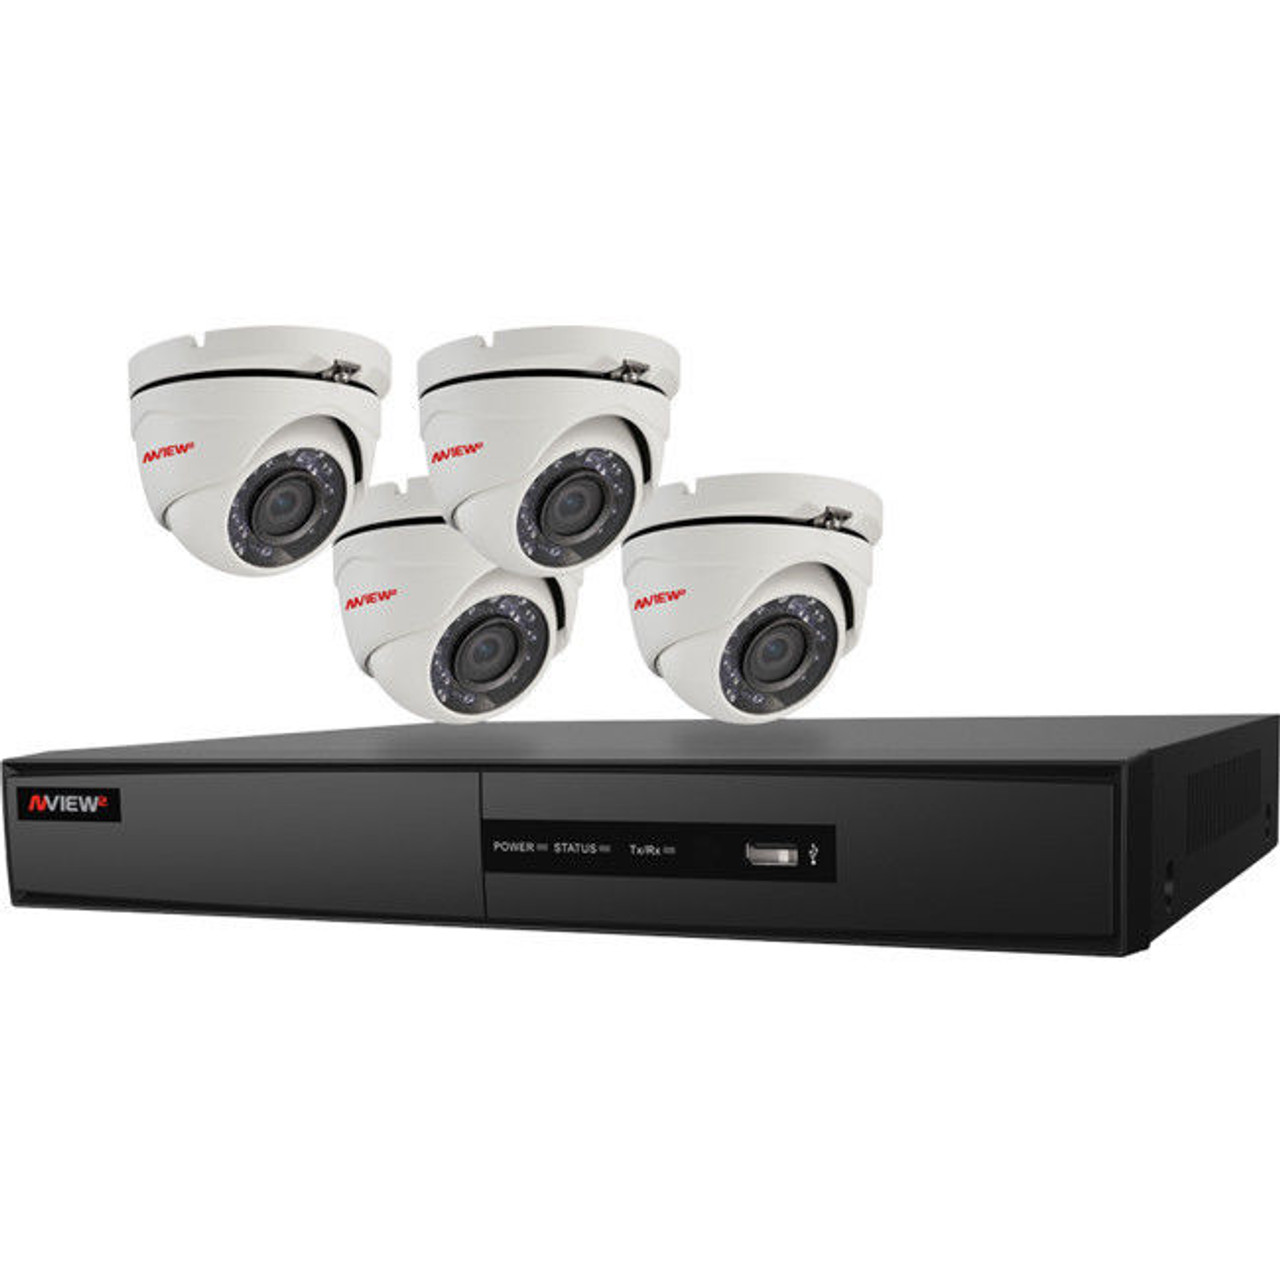 NESS 104-631 NView2 v2 4X4 1080P CCTV KIT - Professional DIY HD CCTV KIT